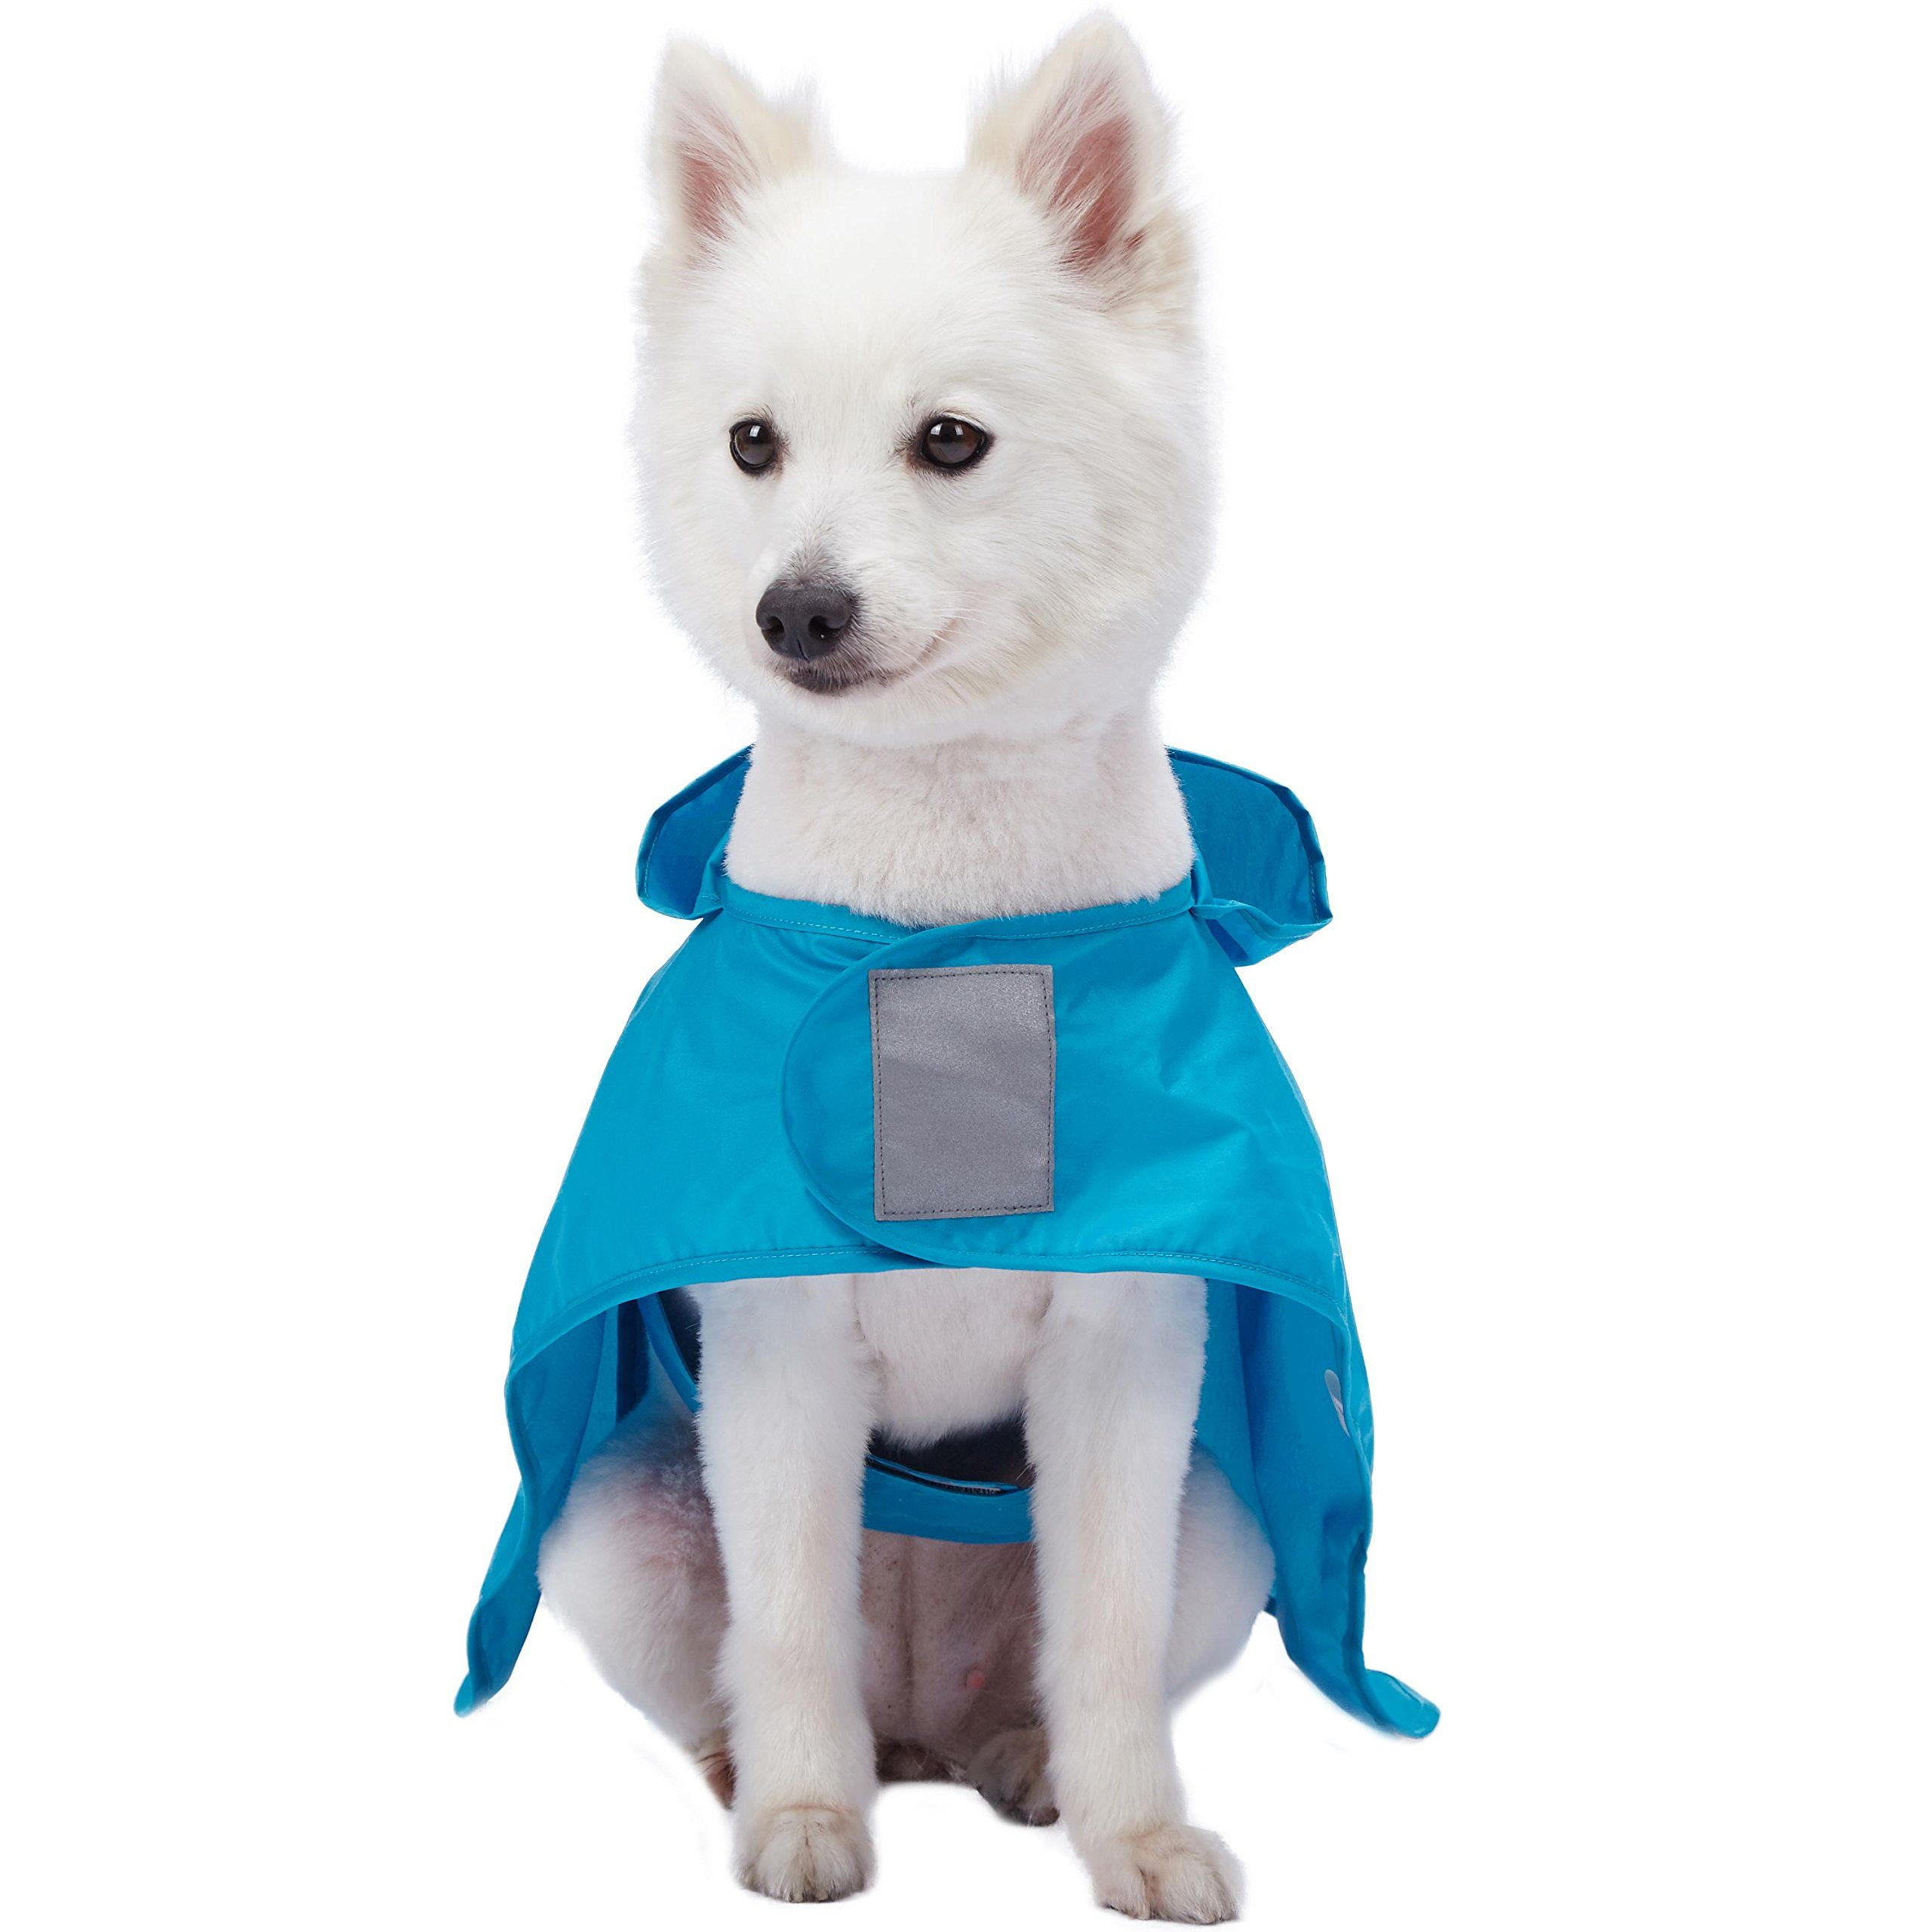 Blueberry Pet 4 Colors 14 Lightweight Packable Outdoor Dog Hooded Raincoat Jacket 3m Reflective Safety Tapes In Azure Blue Pack Of Azure Blue Rain Poncho Dogs